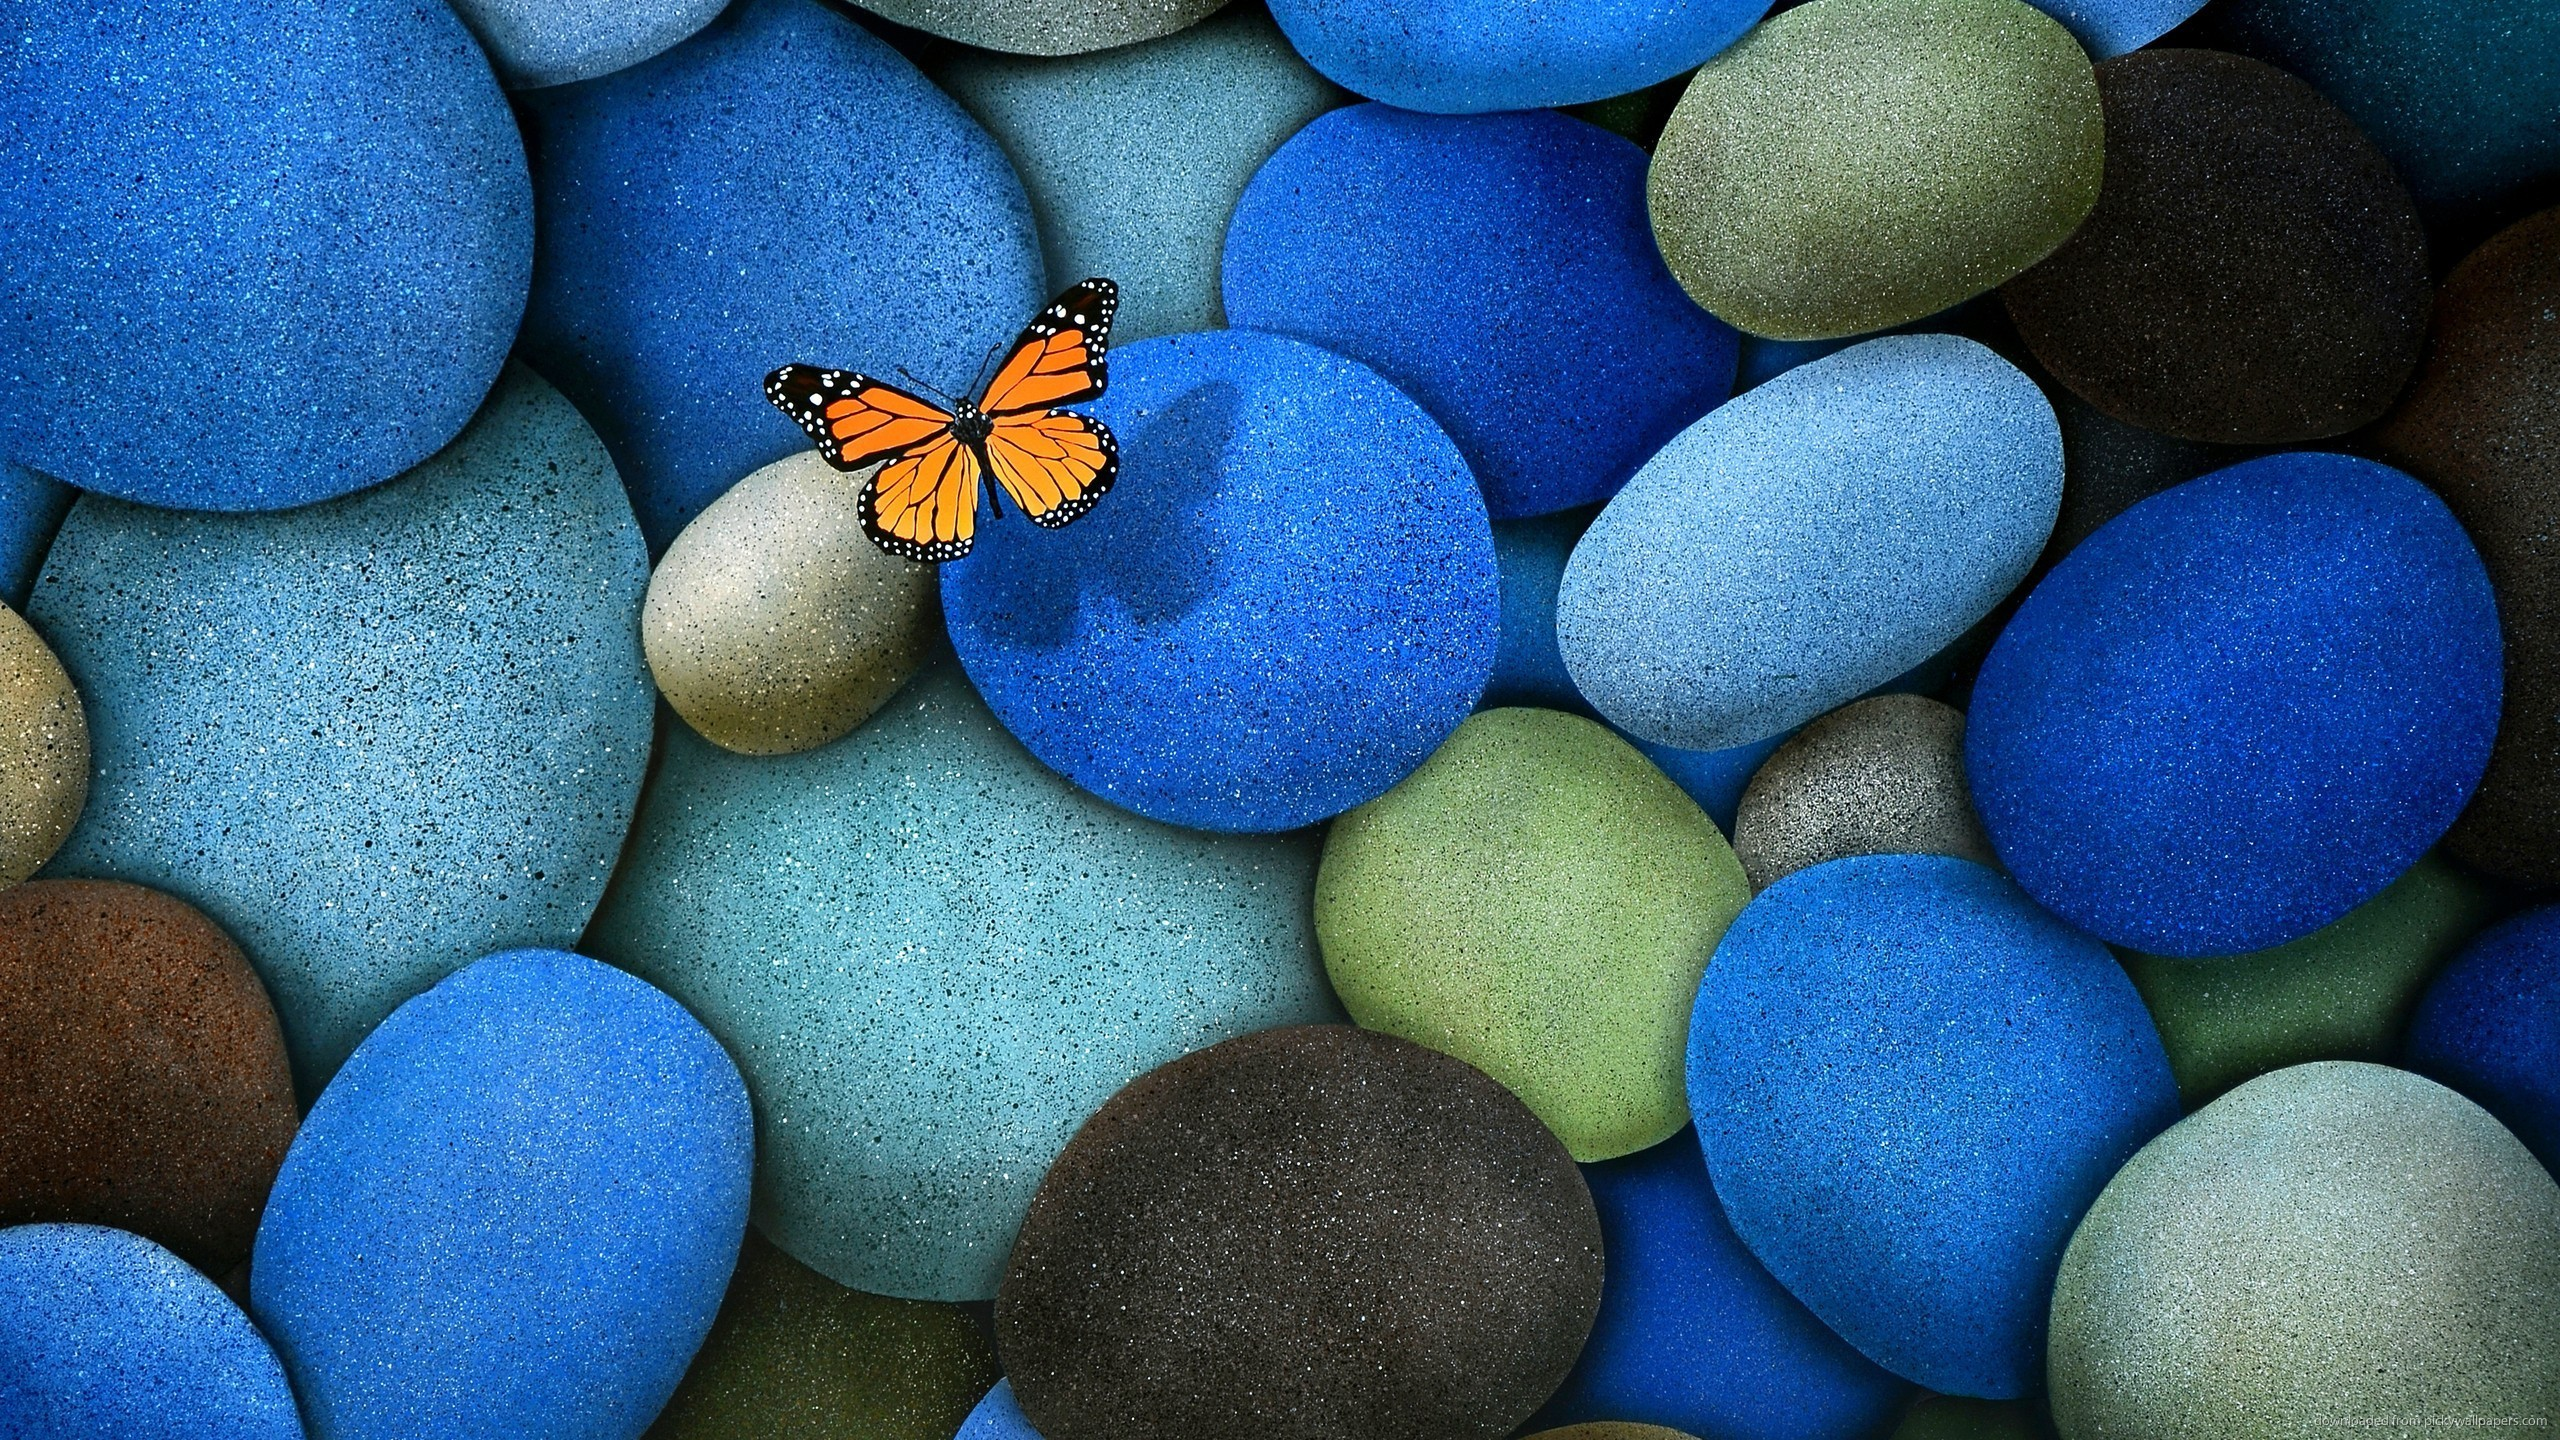 butterfly wallpaper blue pebbles